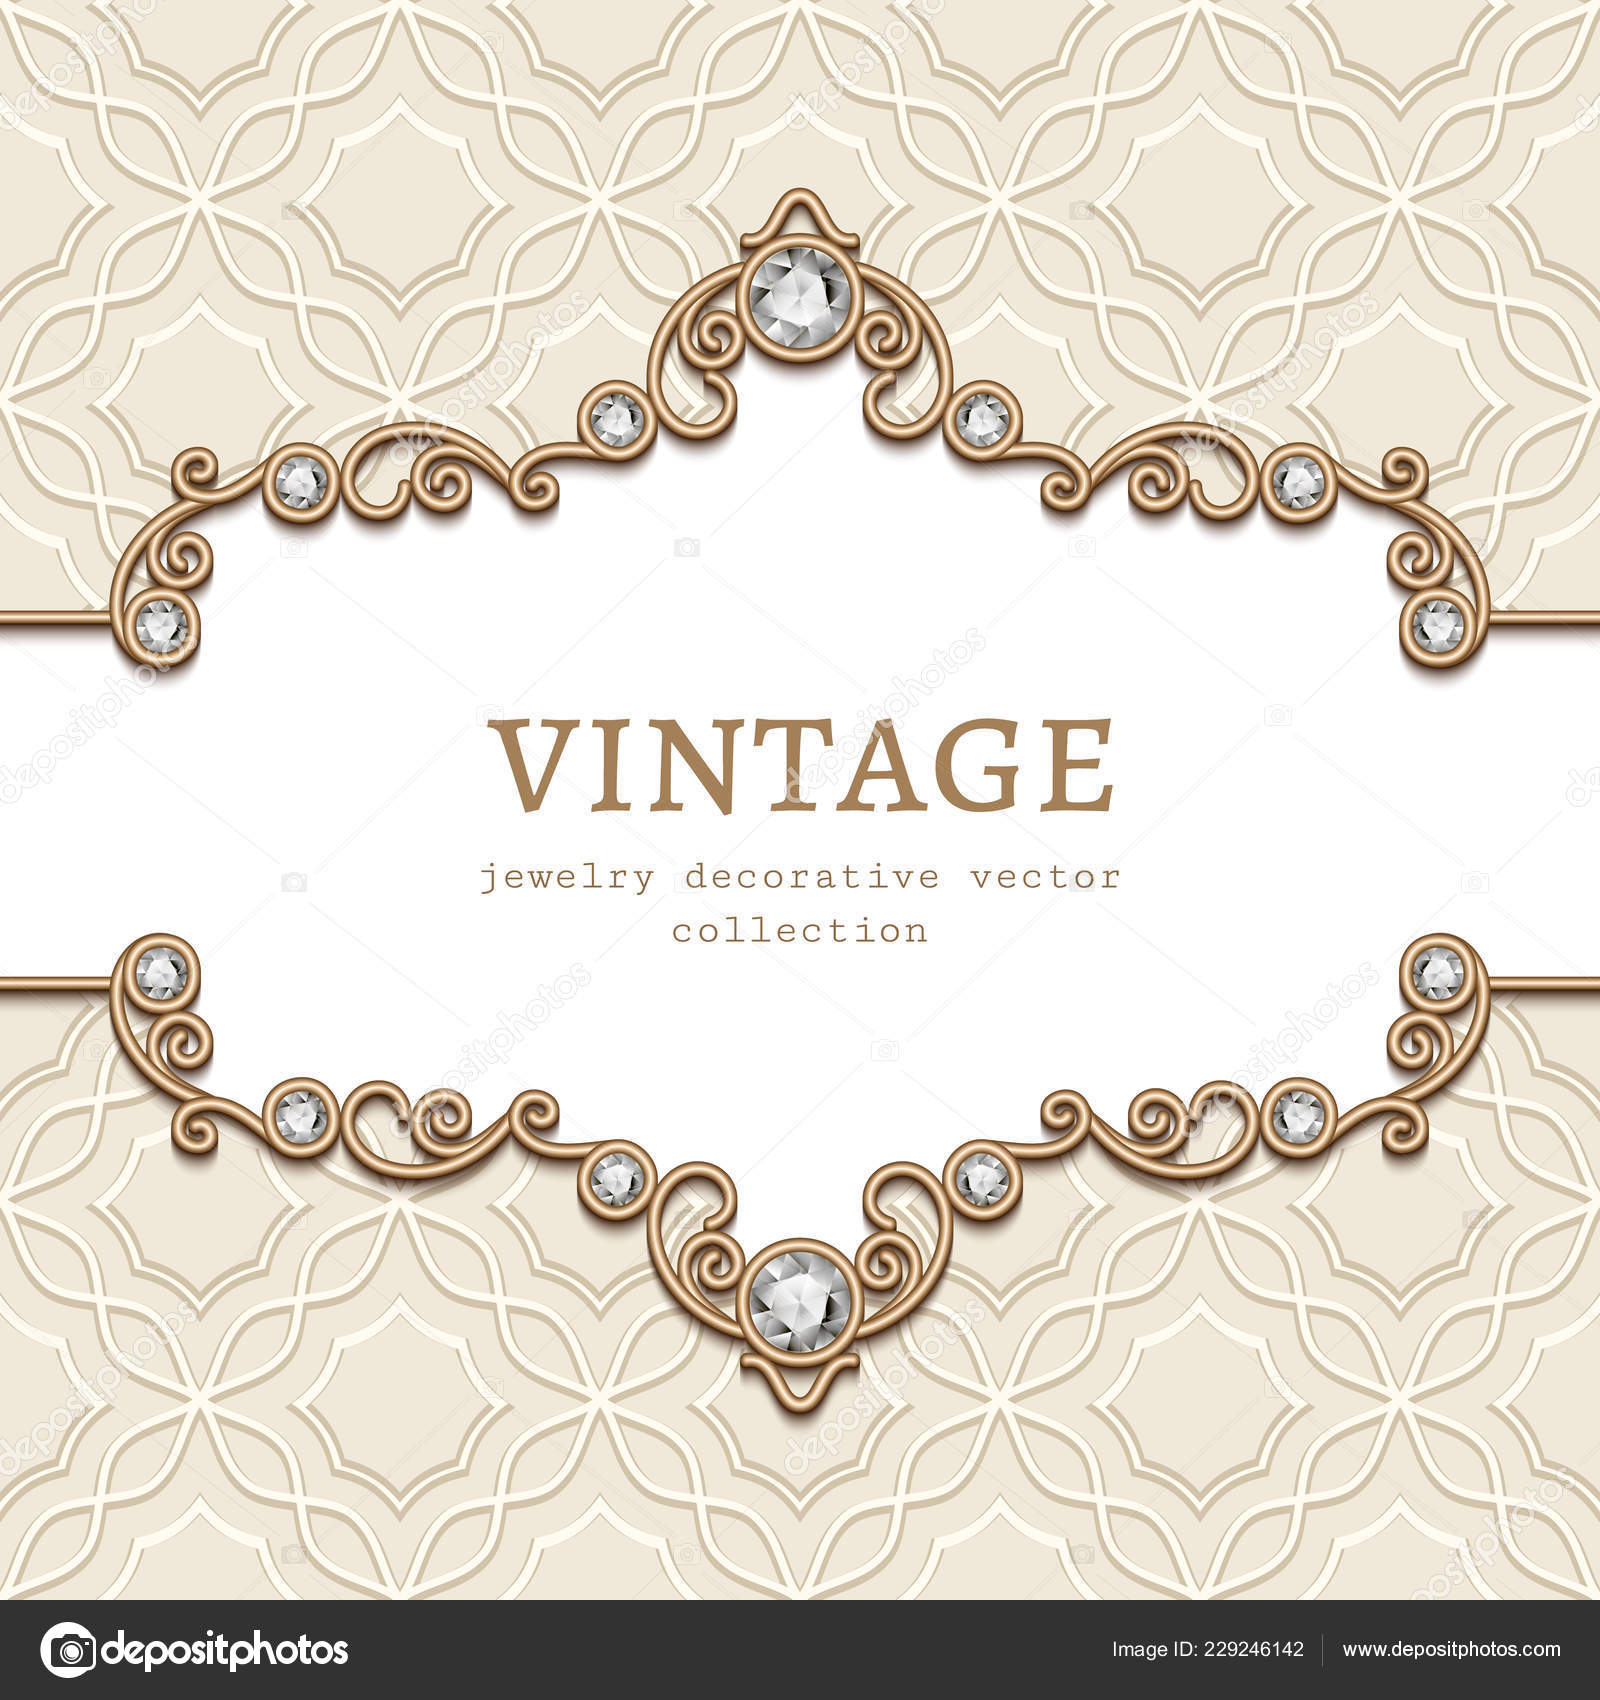 Vintage Frame Diamond Jewellery Border Pattern Elegant